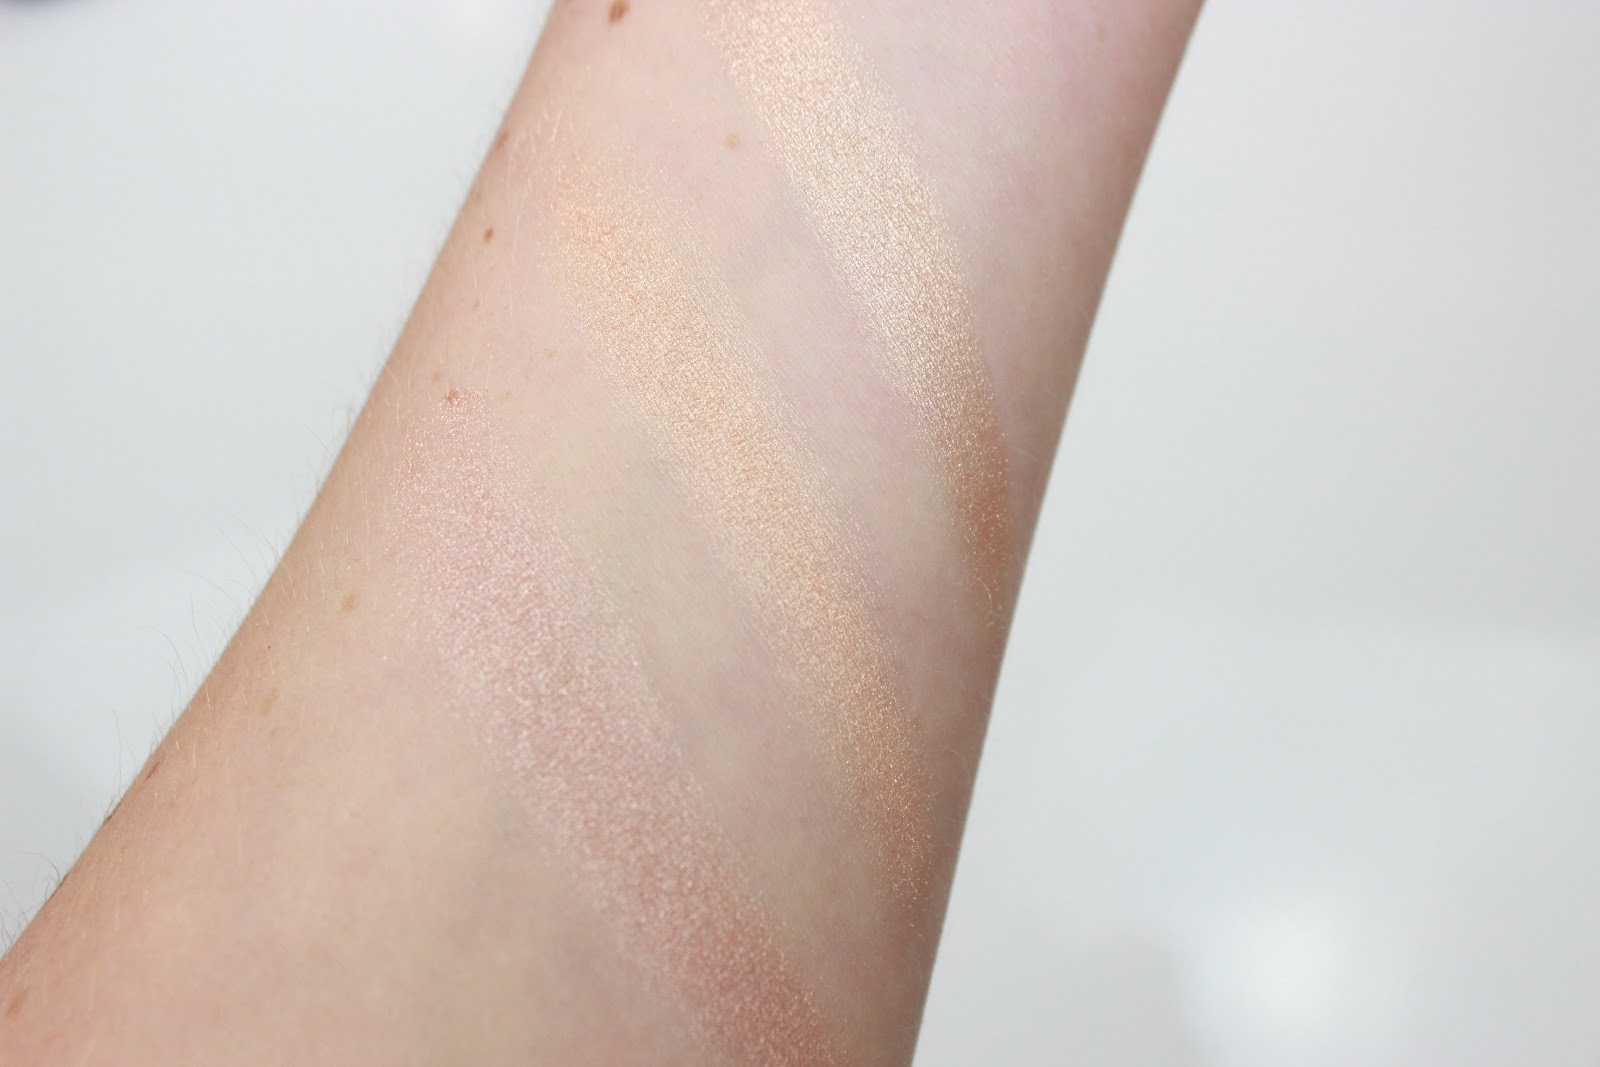 Mac Soft and Gentle, Becca Champagne Pop, Anastasia Beverly Hills So Hollywood swatches